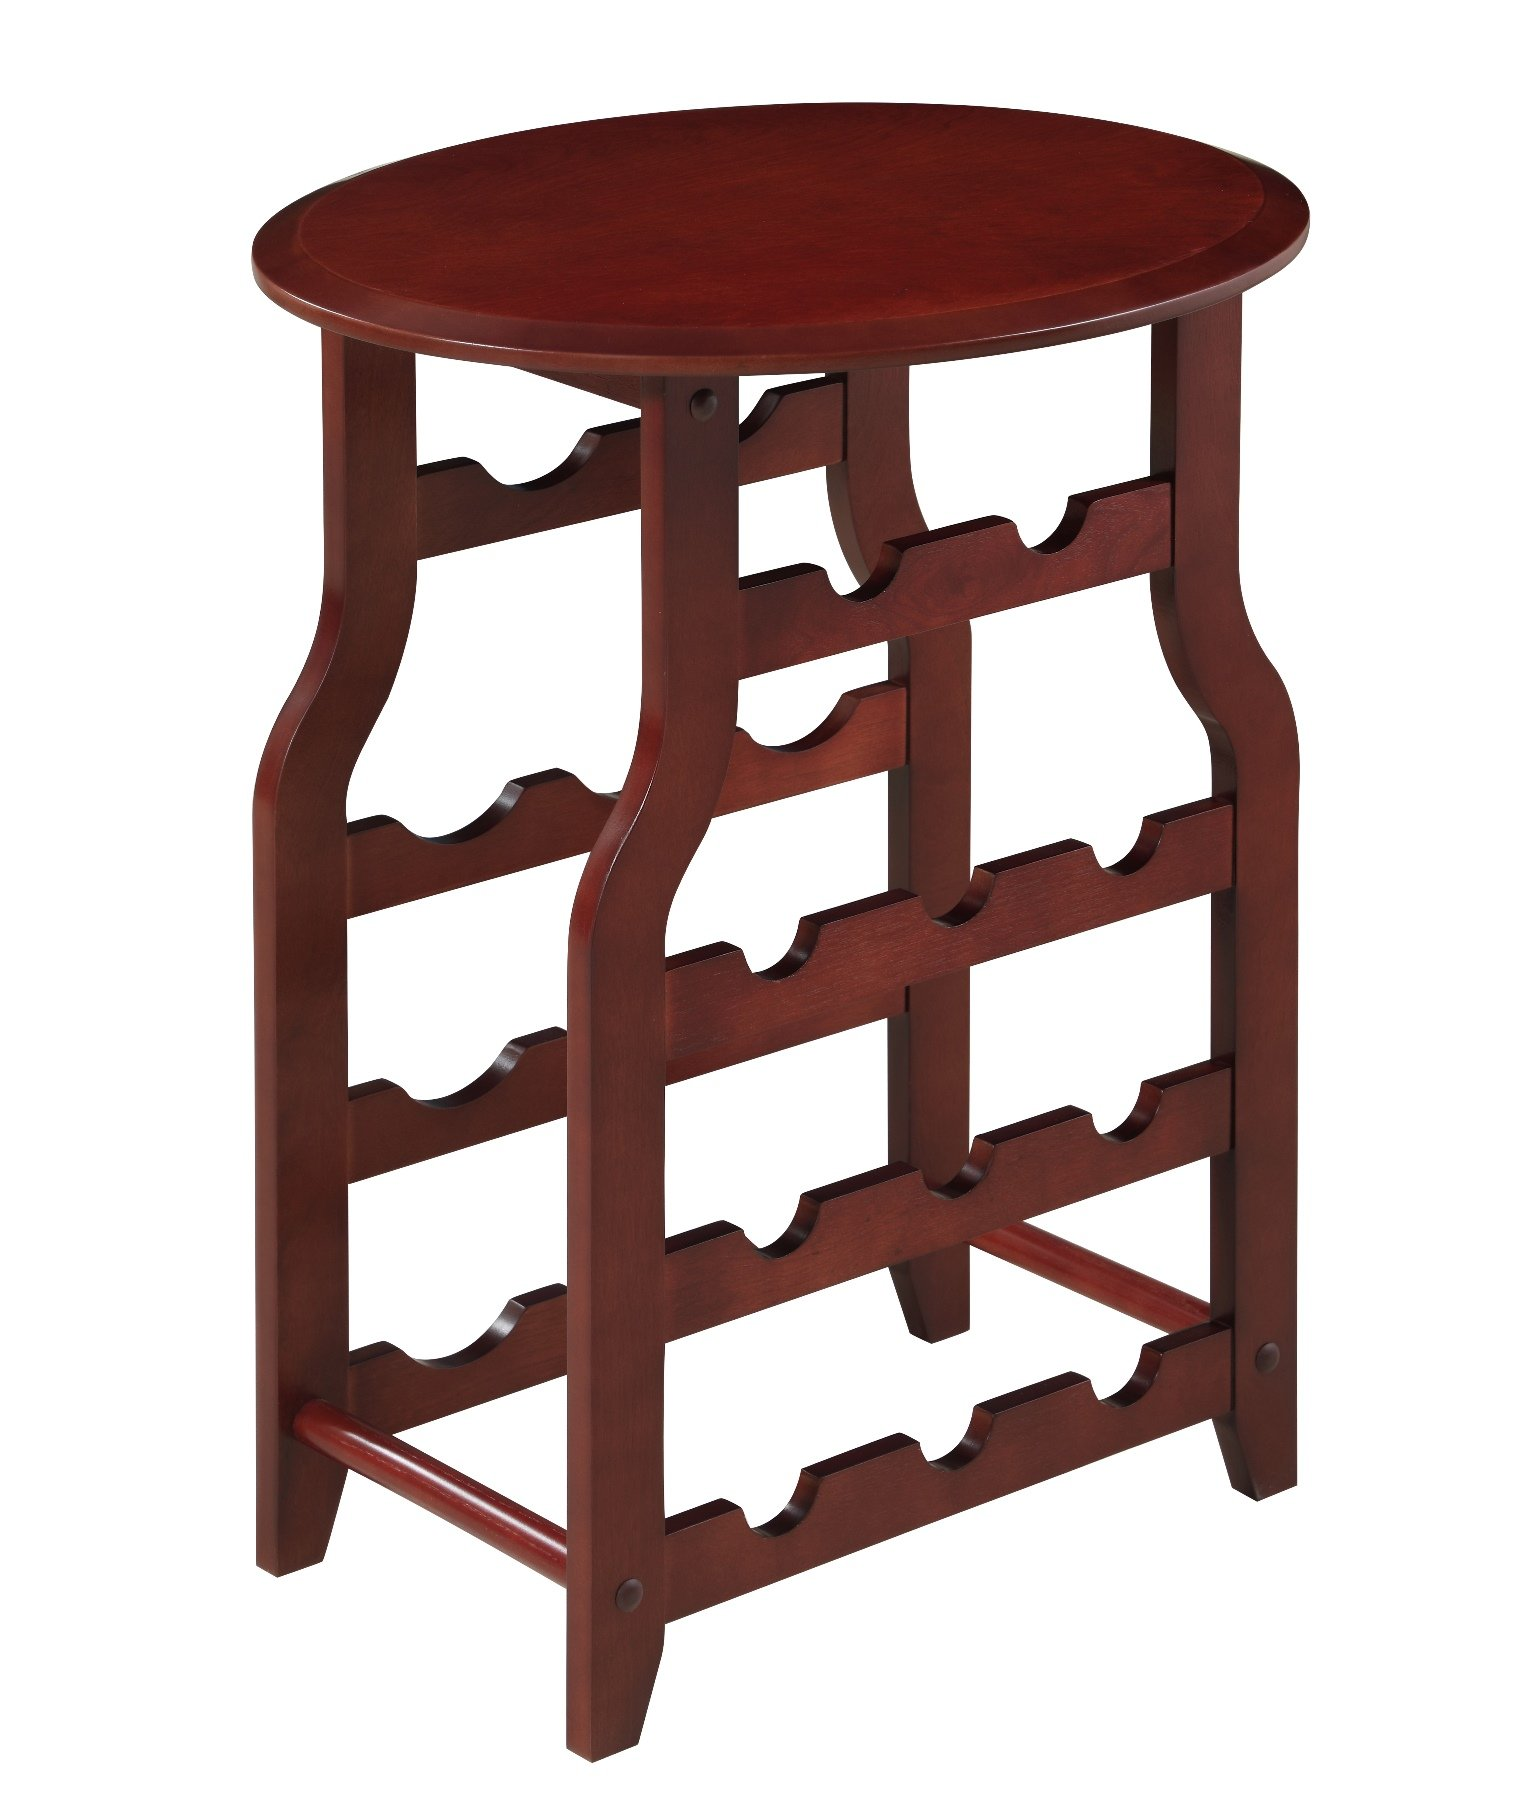 Proman Products Wine Table with Rack by Proman Products